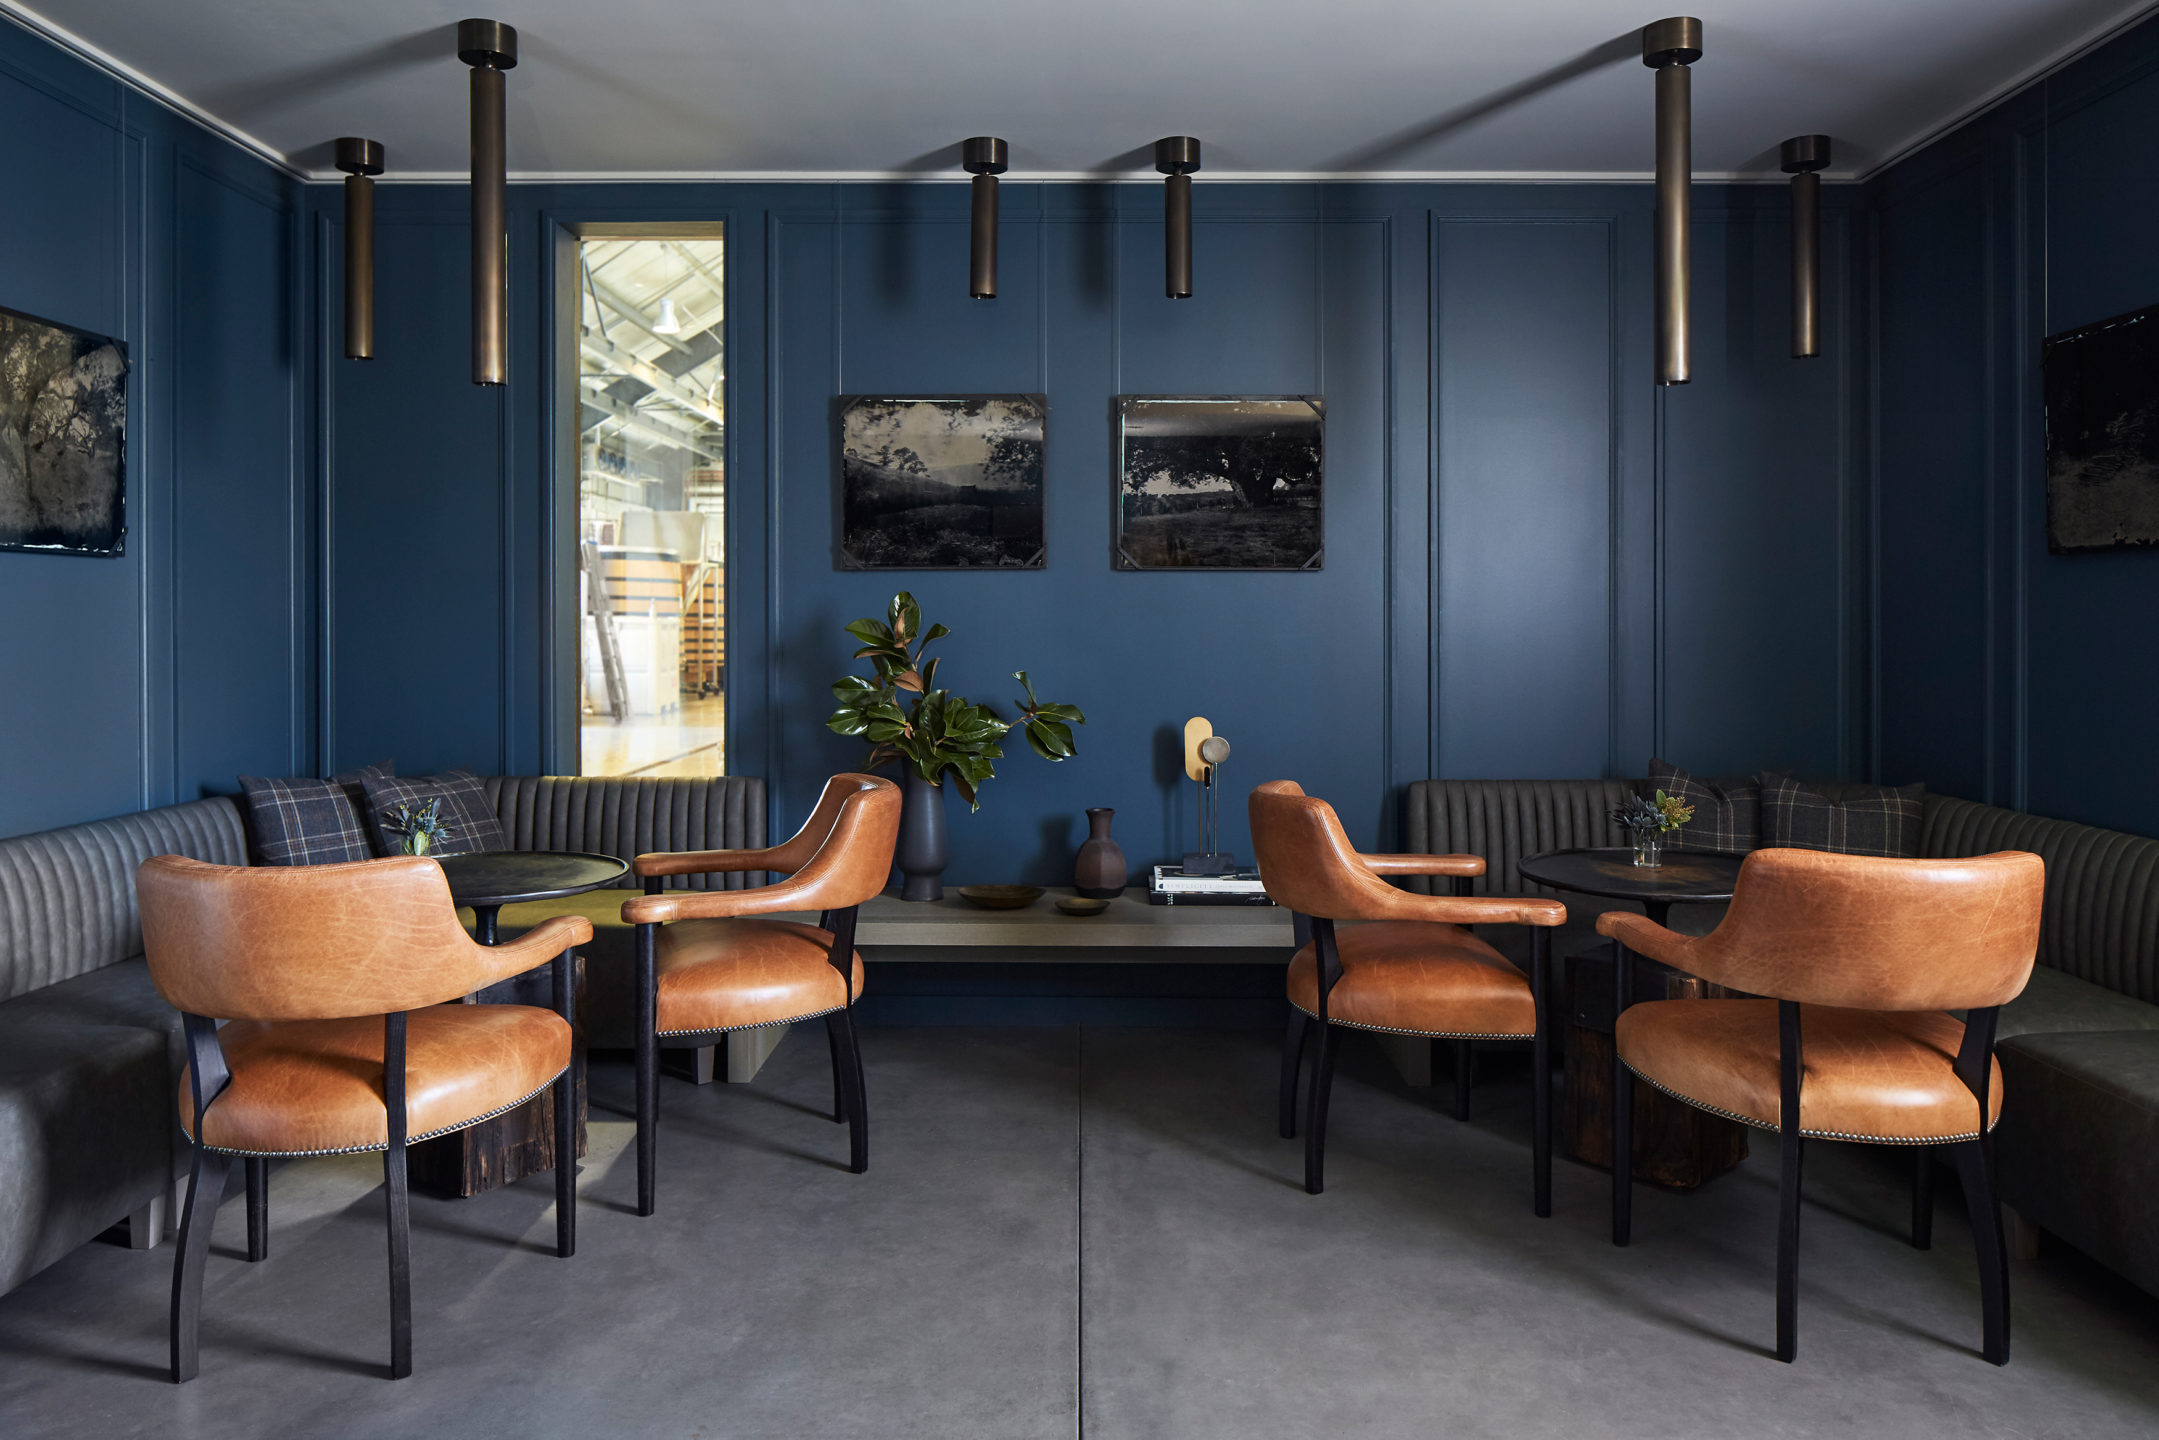 Jennifer_robins_interiors_projects_kosta_browne_winery_1KostaBrowne.LWD_seating